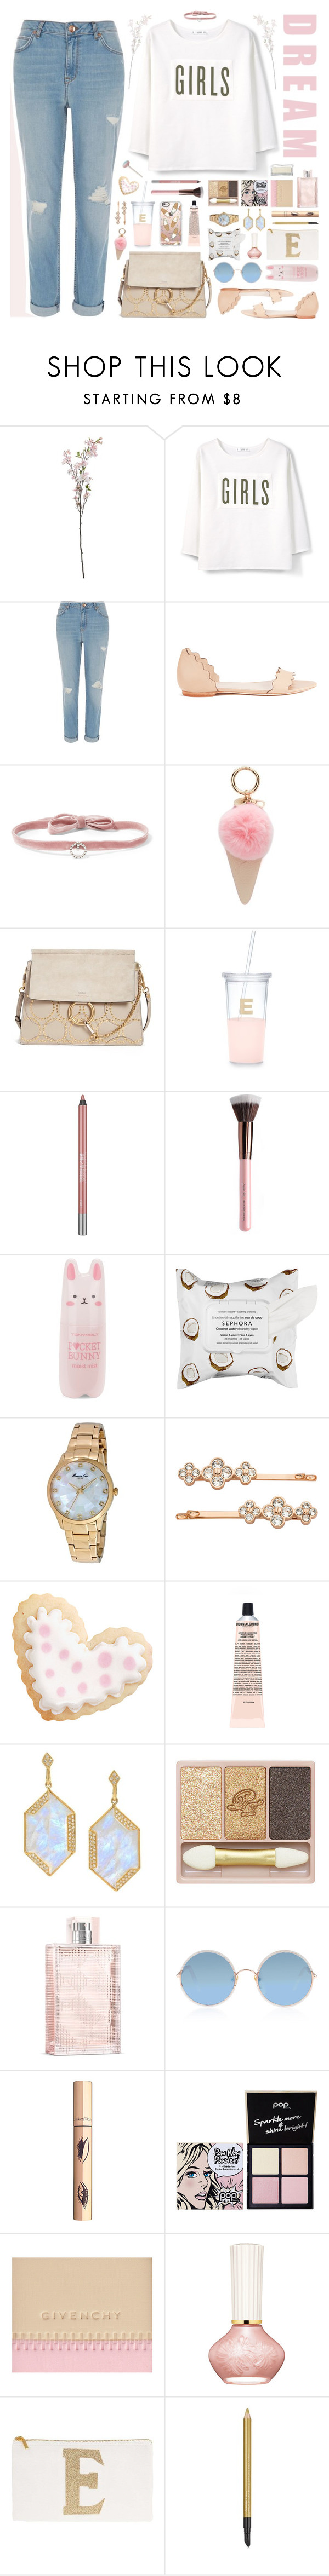 """""""Dream Girls🌸"""" by ealkhaldi ❤ liked on Polyvore featuring MANGO, River Island, Loeffler Randall, DANNIJO, Iphoria, Chloé, Kate Spade, Urban Decay, Tony Moly and Sephora Collection"""